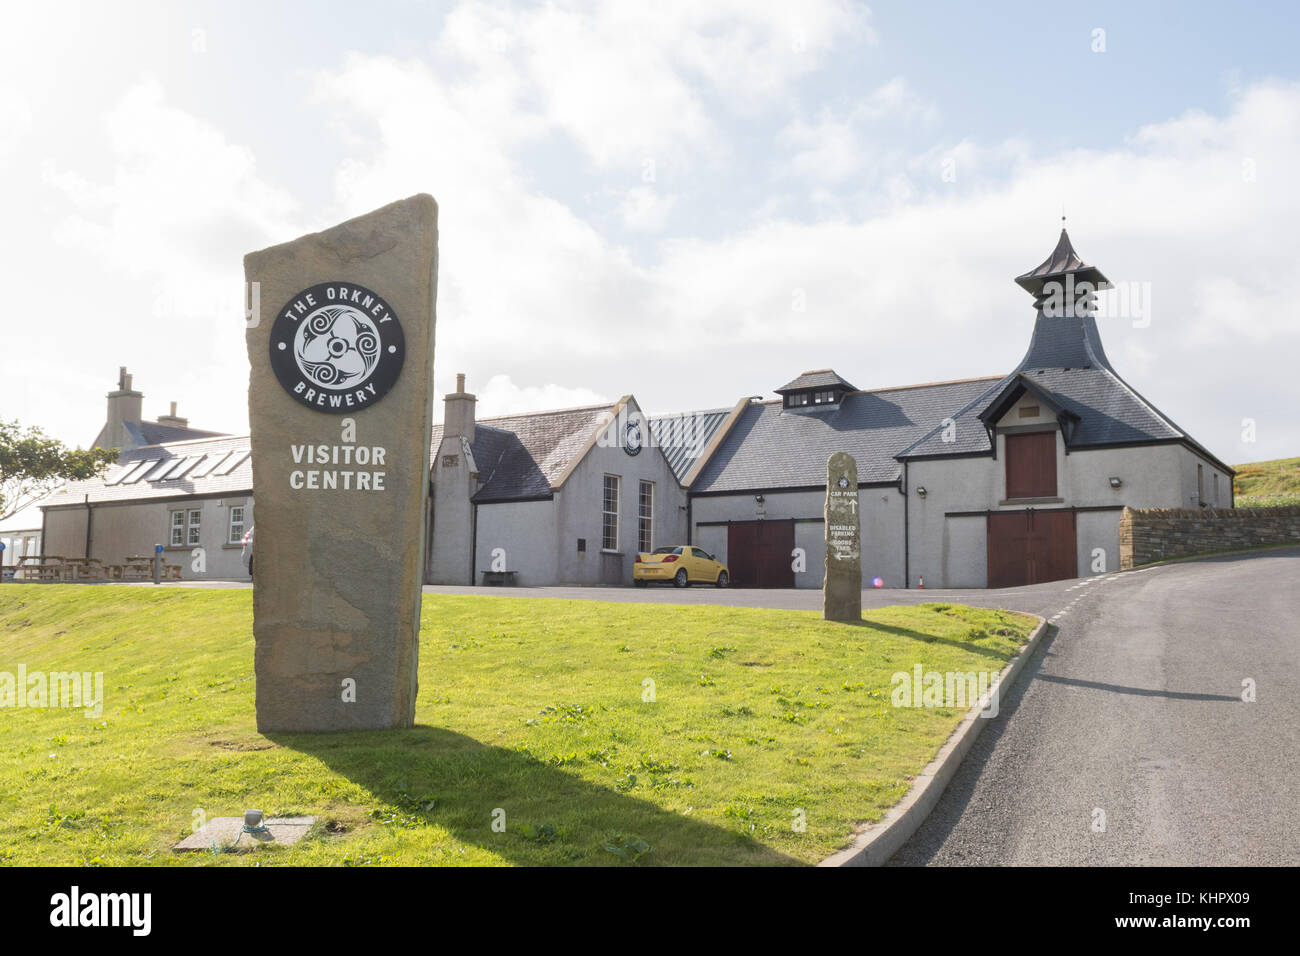 Orkney Brewery Visitor Centre, Quoyloo, Orkney, Scotland, UK - Stock Image